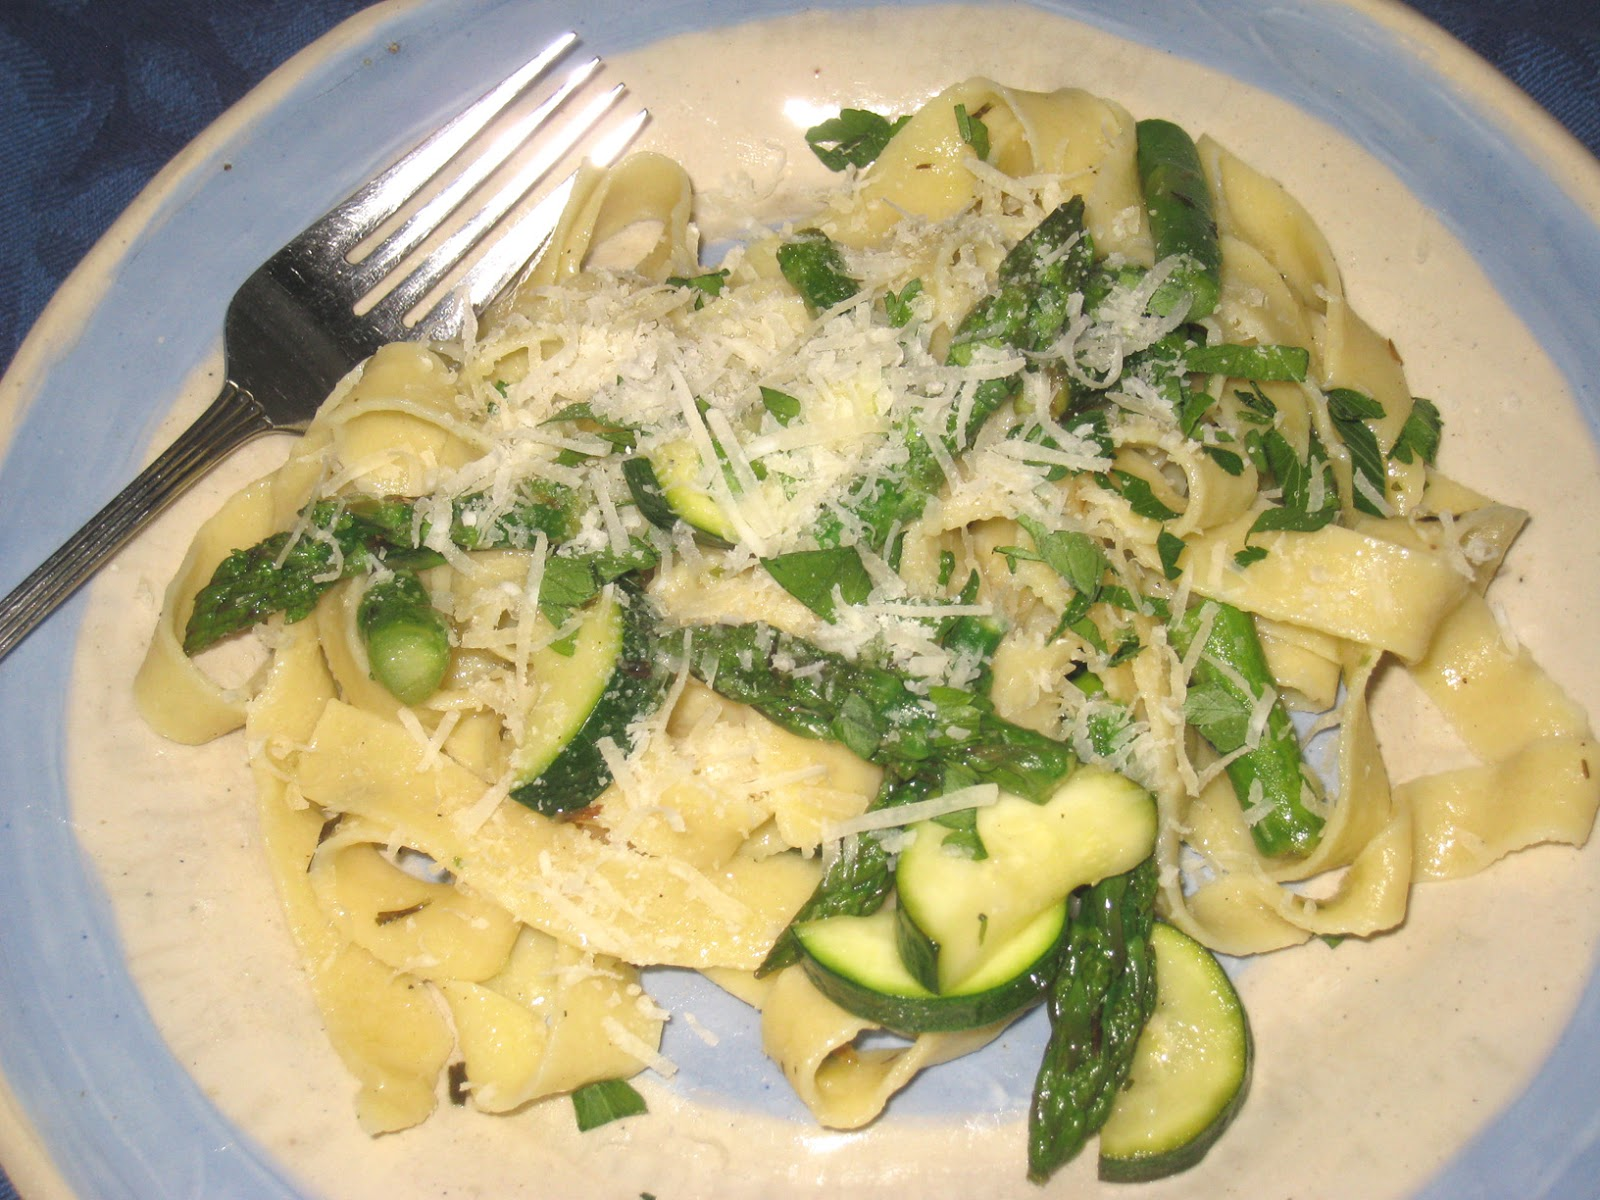 ... pasta with asparagus recipe food to love pasta with asparagus recipe